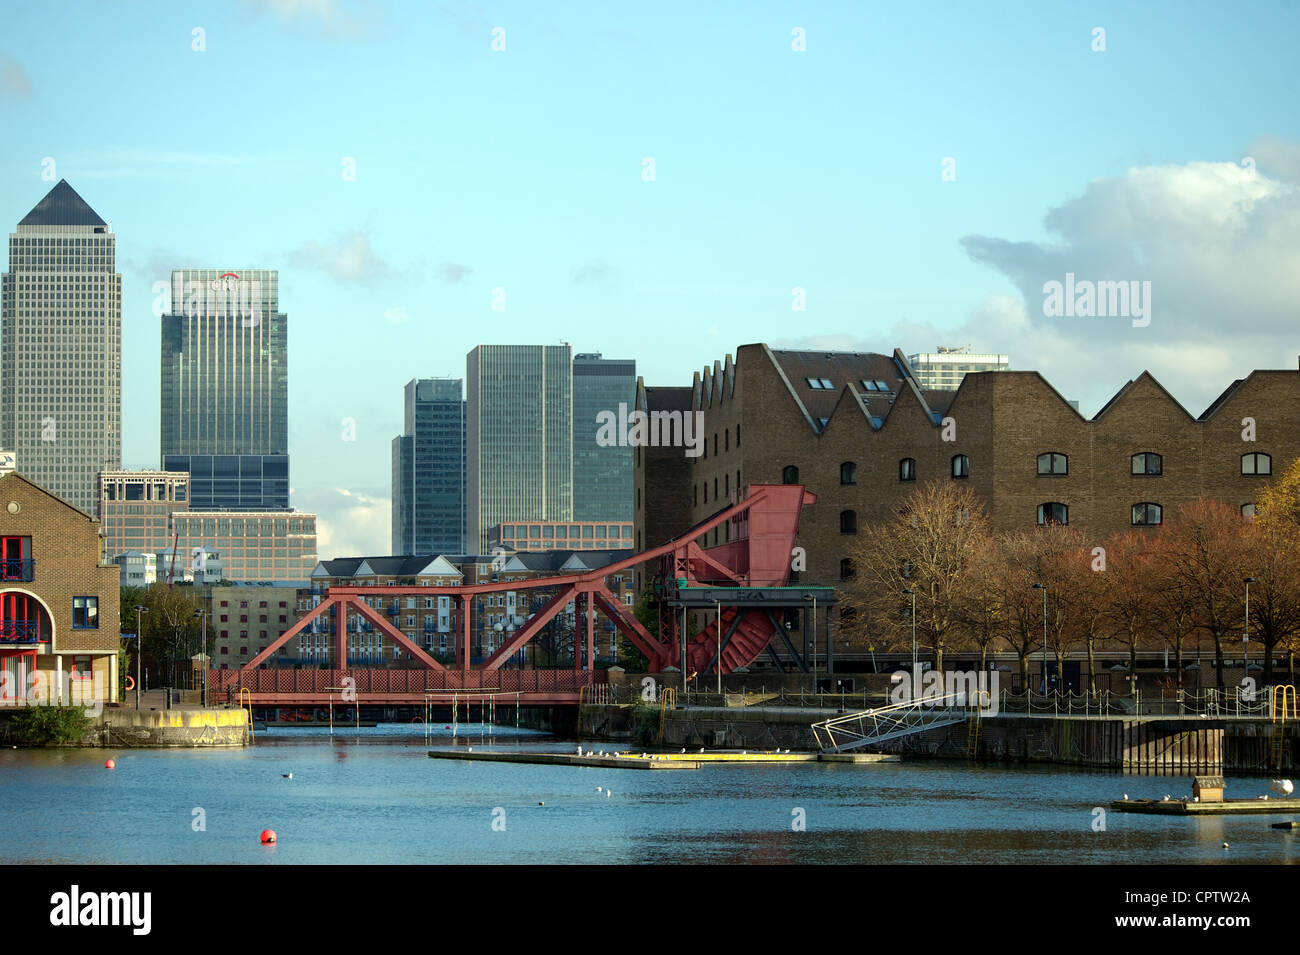 Shadwell Basin with Canary Wharf in the background, East London, UK - Stock Image